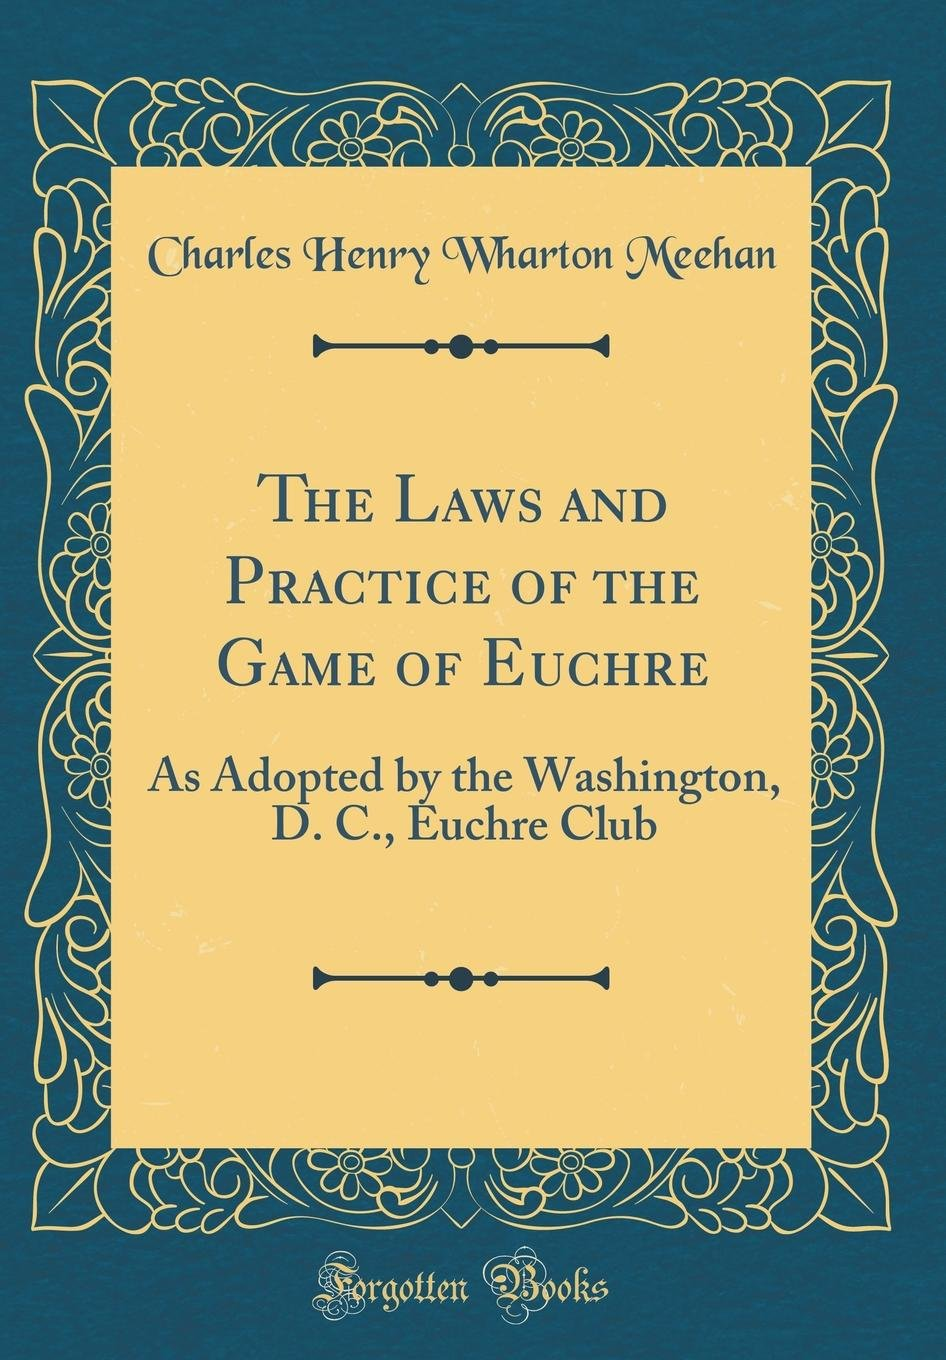 Download The Laws and Practice of the Game of Euchre: As Adopted by the Washington, D. C., Euchre Club (Classic Reprint) pdf